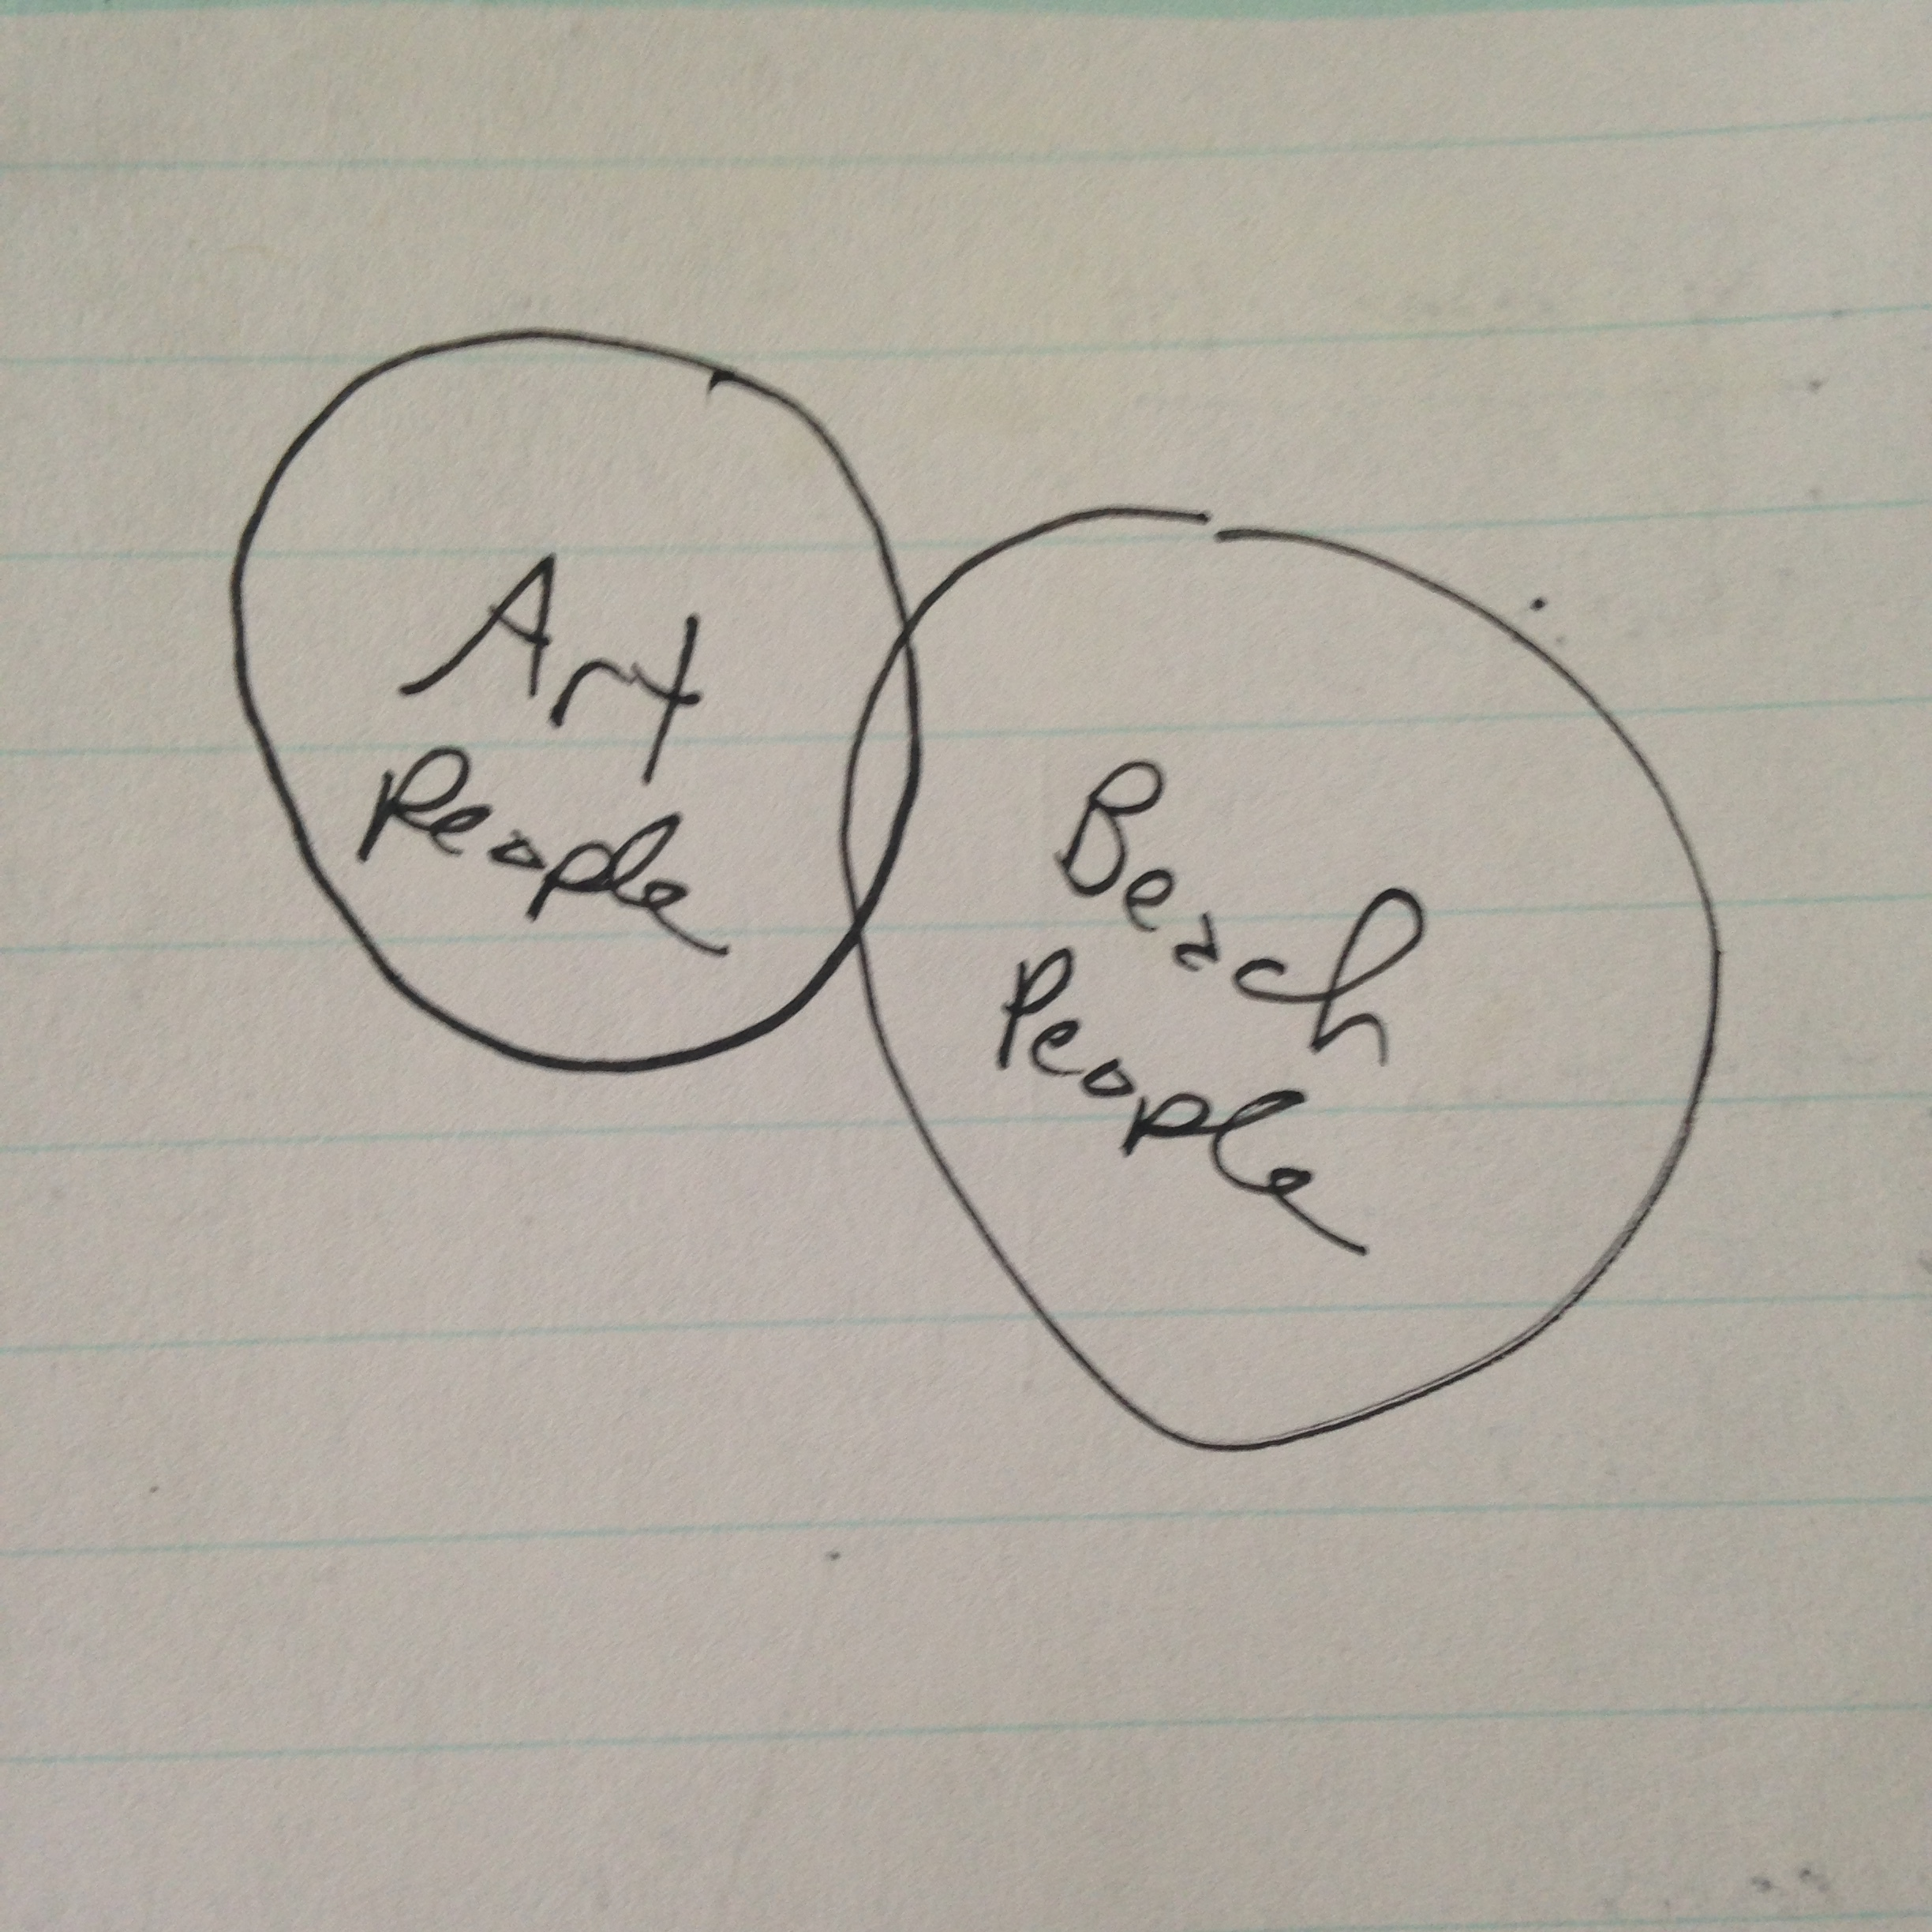 There's nothing a good Venn diagram can't explain.